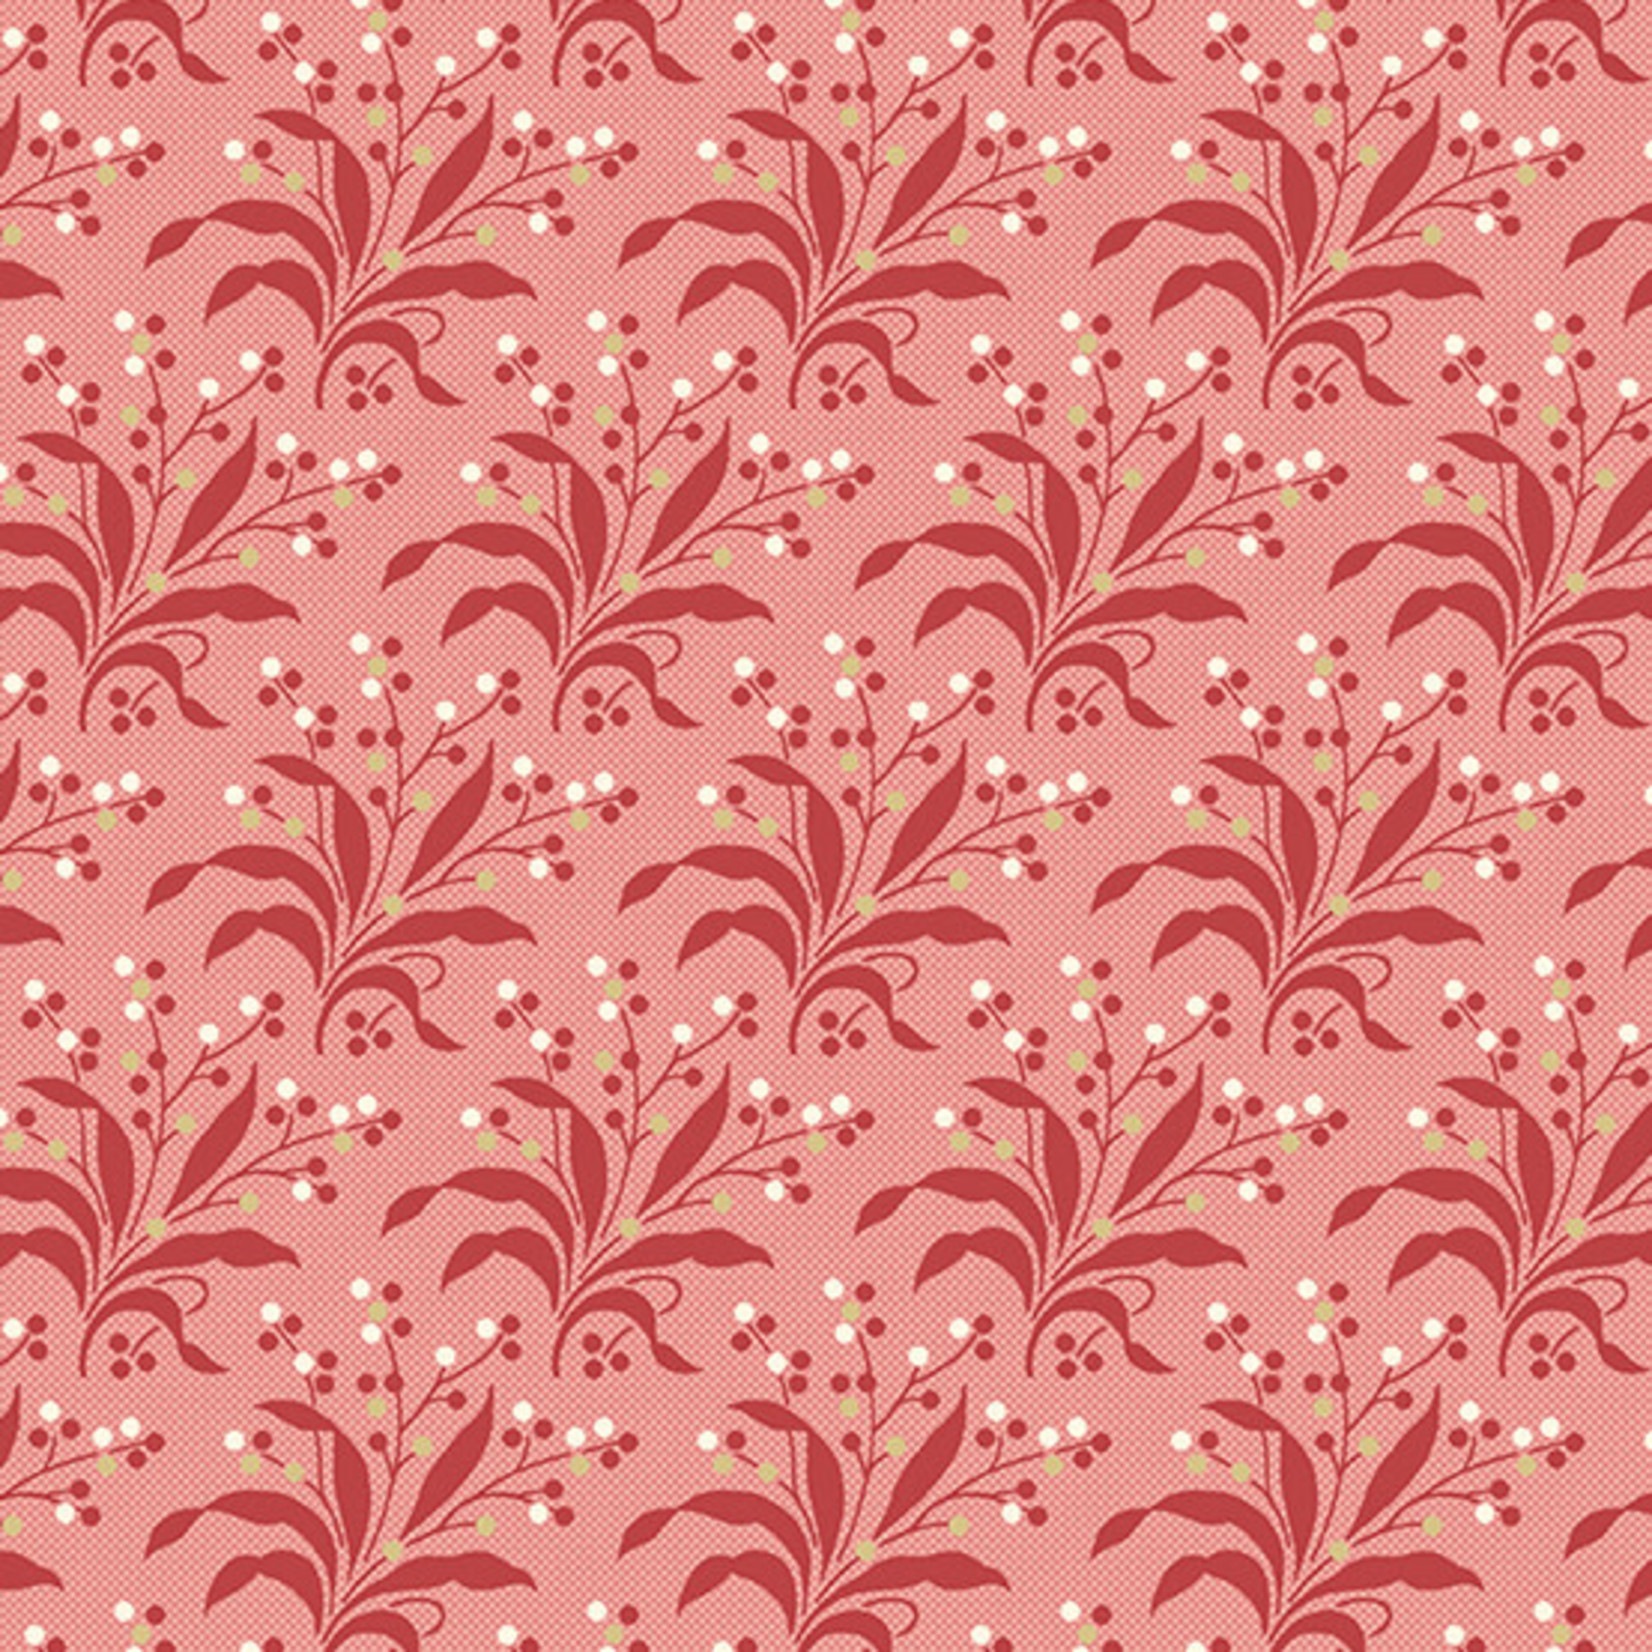 LAUNDRY BASKET QUILTS SWEET 16, FERN, RED (A-9580-R) PER CM or $20/m